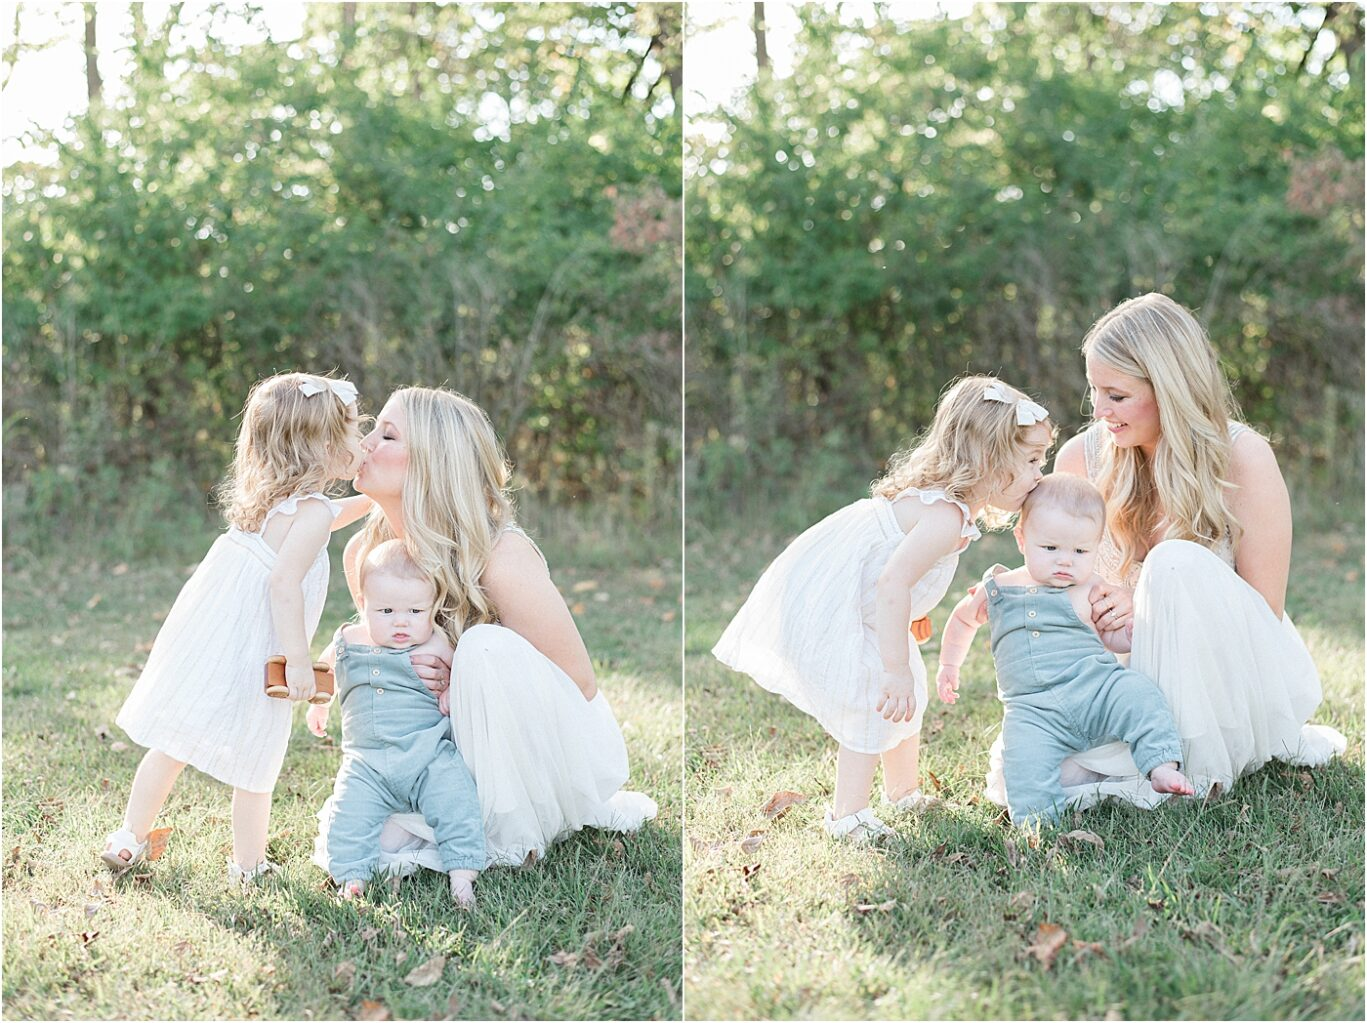 Mom and her two kids being really sweet together. Photos by Lindsay Konopa Photography.